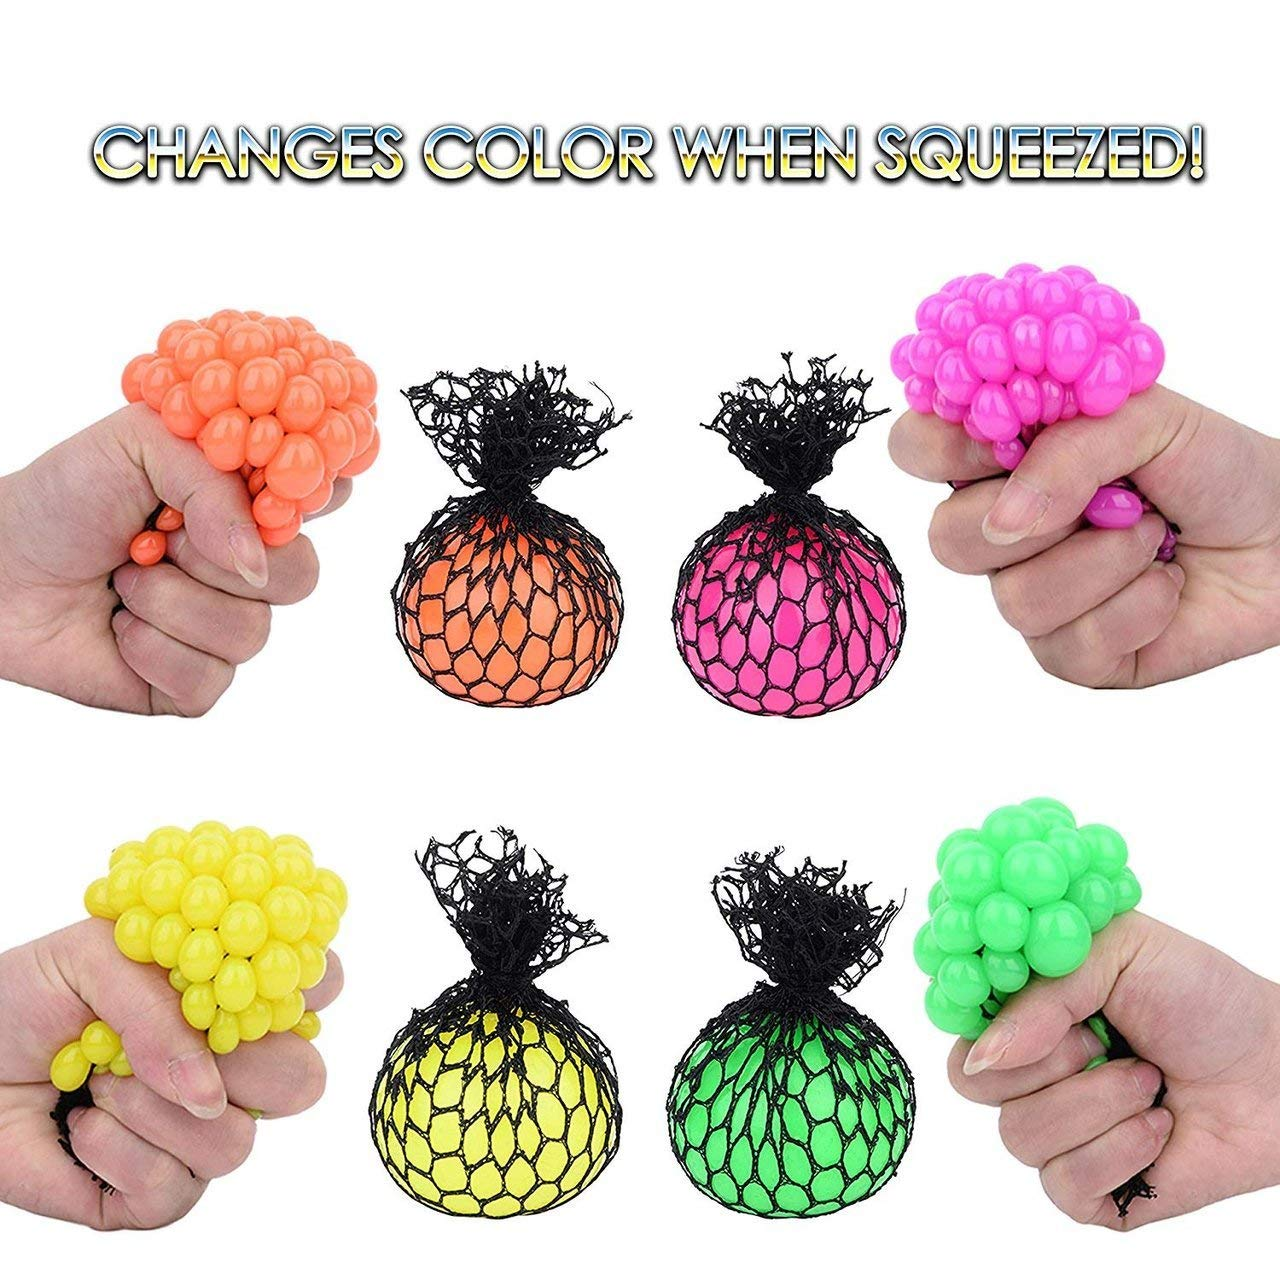 Totem World 36 Colorful Sewn Mesh Stress Balls - 2.4'' Squishy Fidget Toy Perfect for Kids and Adults Materials for Lasting Use - Squeeze Balls for Anxiety and Concentration - Great Party Favors by Totem World (Image #2)